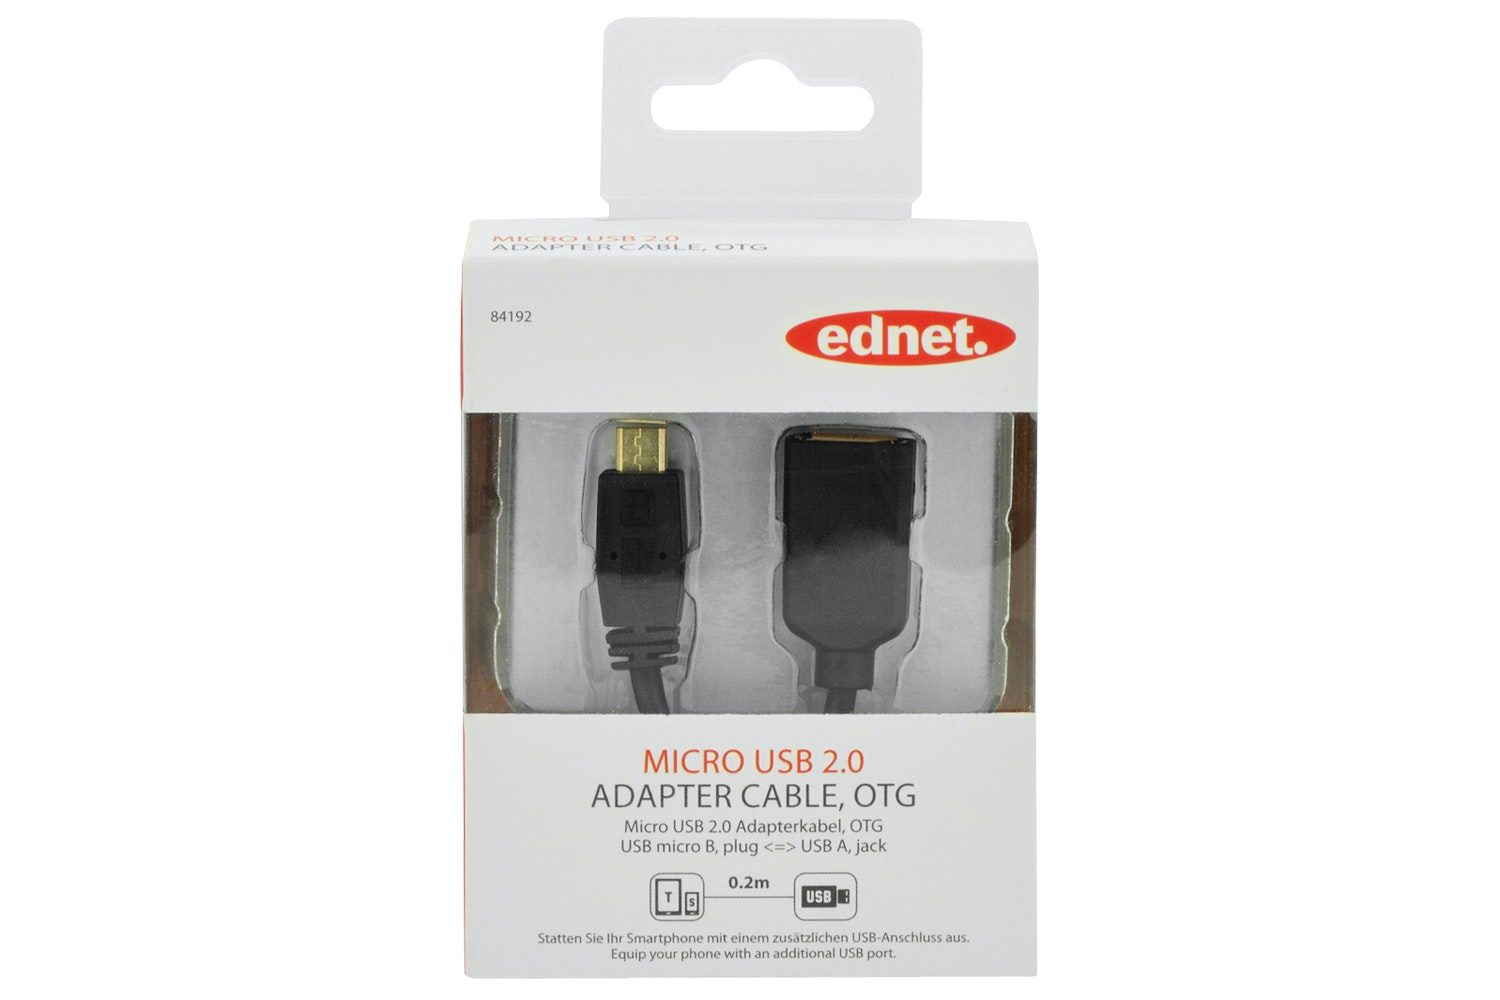 Ednet USB 2.0 OTG Adapter | 0.2M